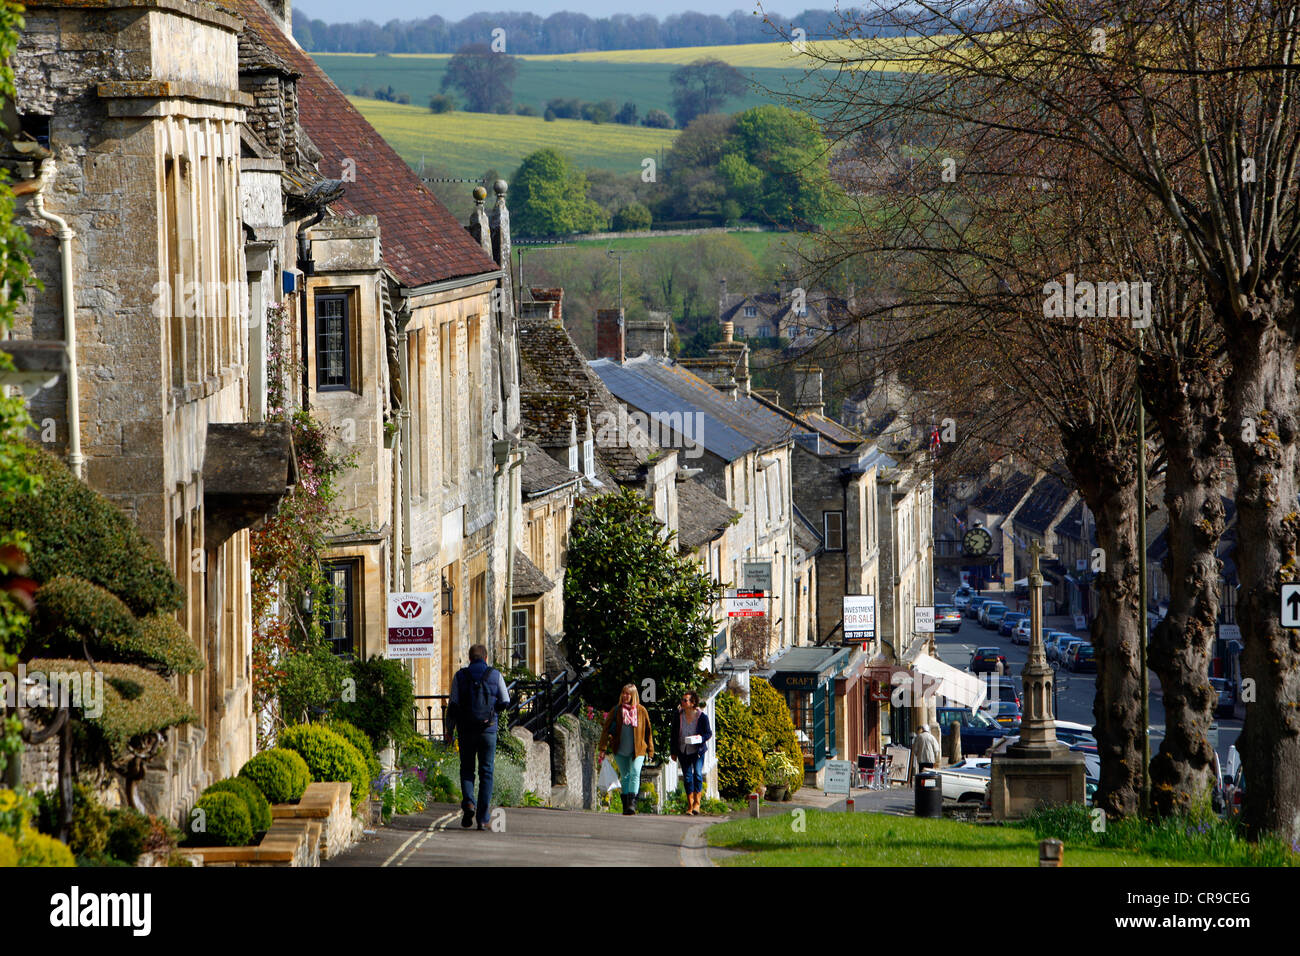 Burford, a small town on the River Windrush in the Cotswold Hills, minted by ancient stone houses. Burford, Oxfordshire, - Stock Image